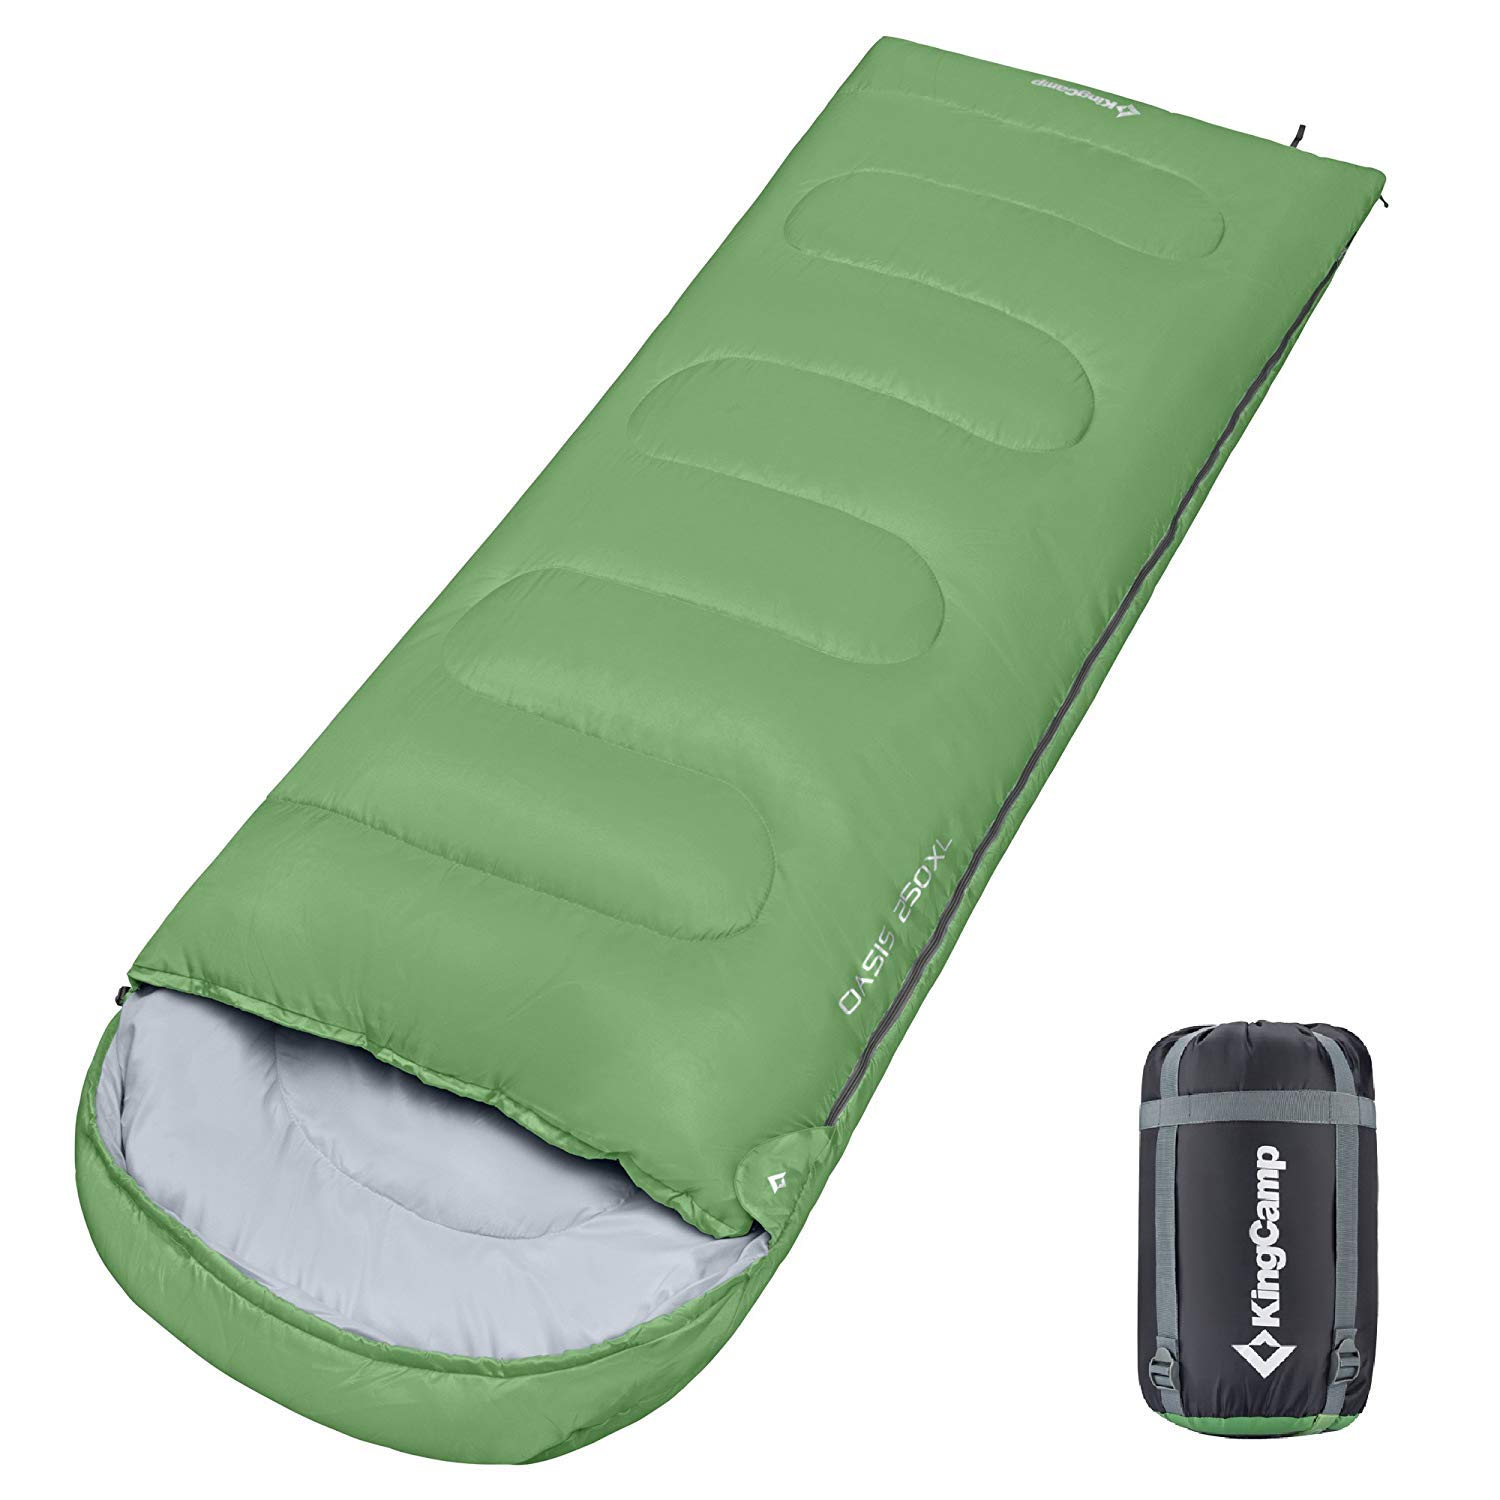 KingCamp Envelope Sleeping Bag 3 Season Lightweight Comfort Portable Great for Adults Kids Camping Backpack Hiking with Compression Sack Extreme Temp Rating 26F/-3C by KingCamp